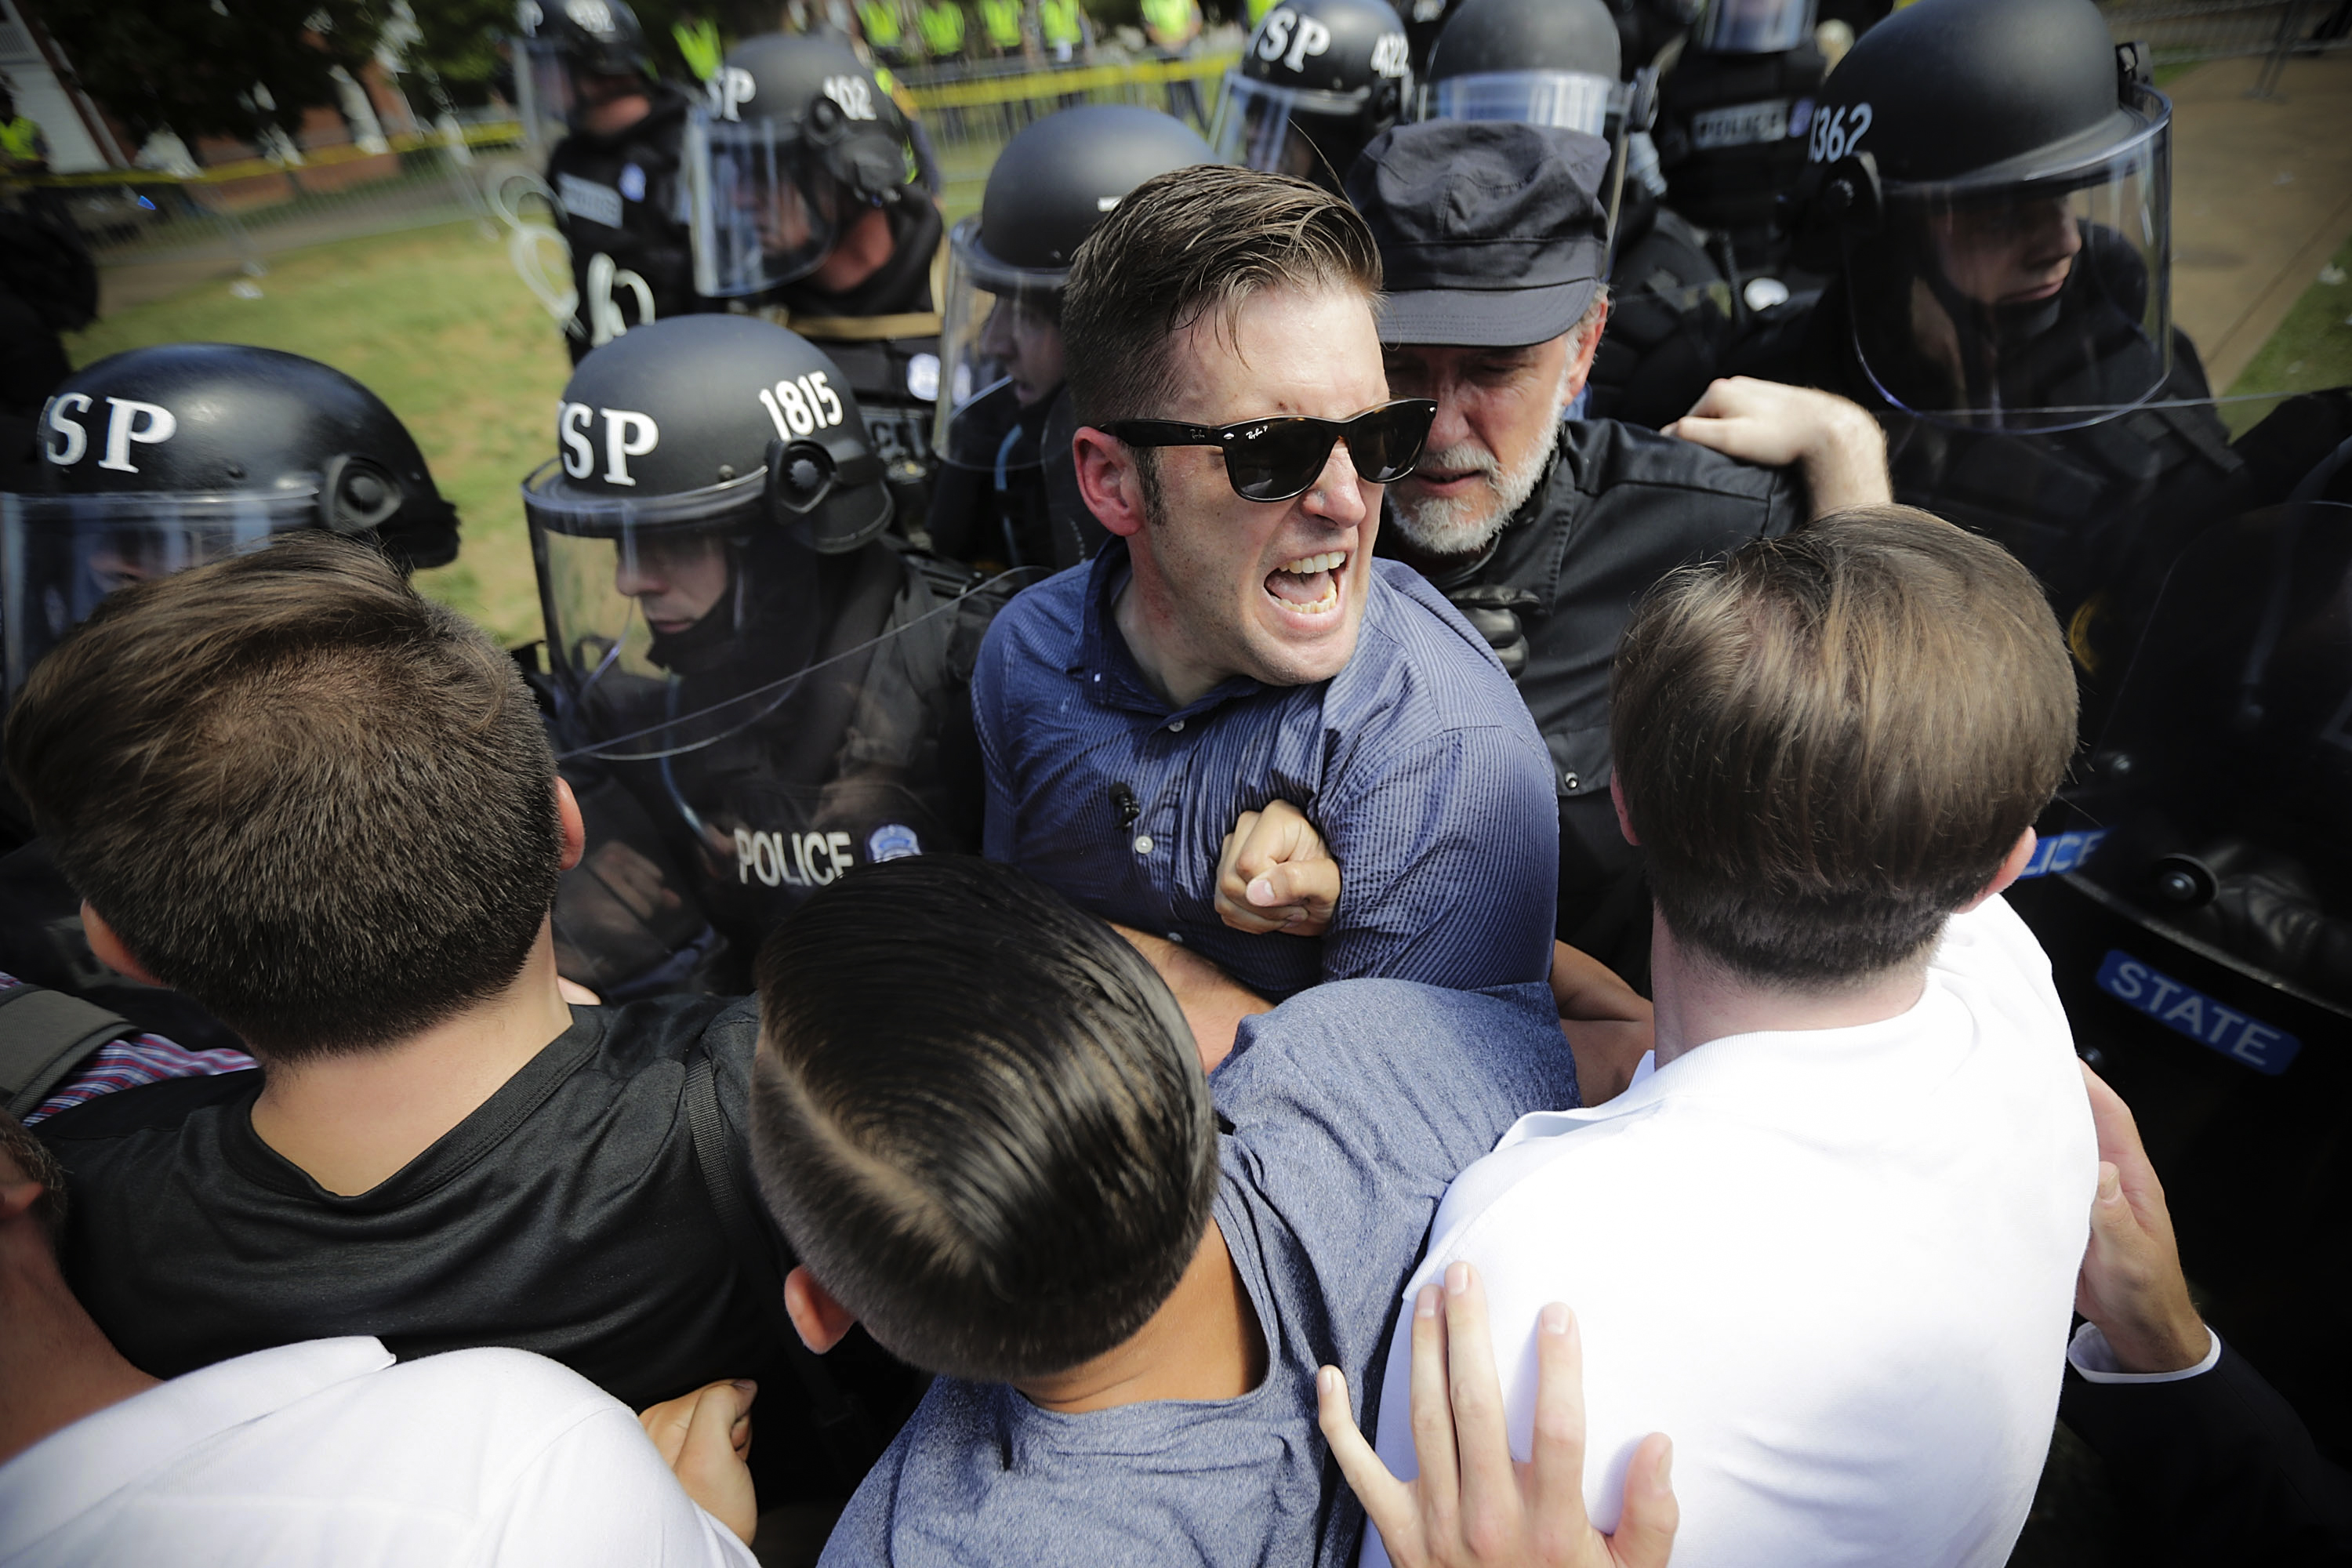 White nationalist Richard Spencer and his supporters clash with Virginia State Police in Emancipation Park after the